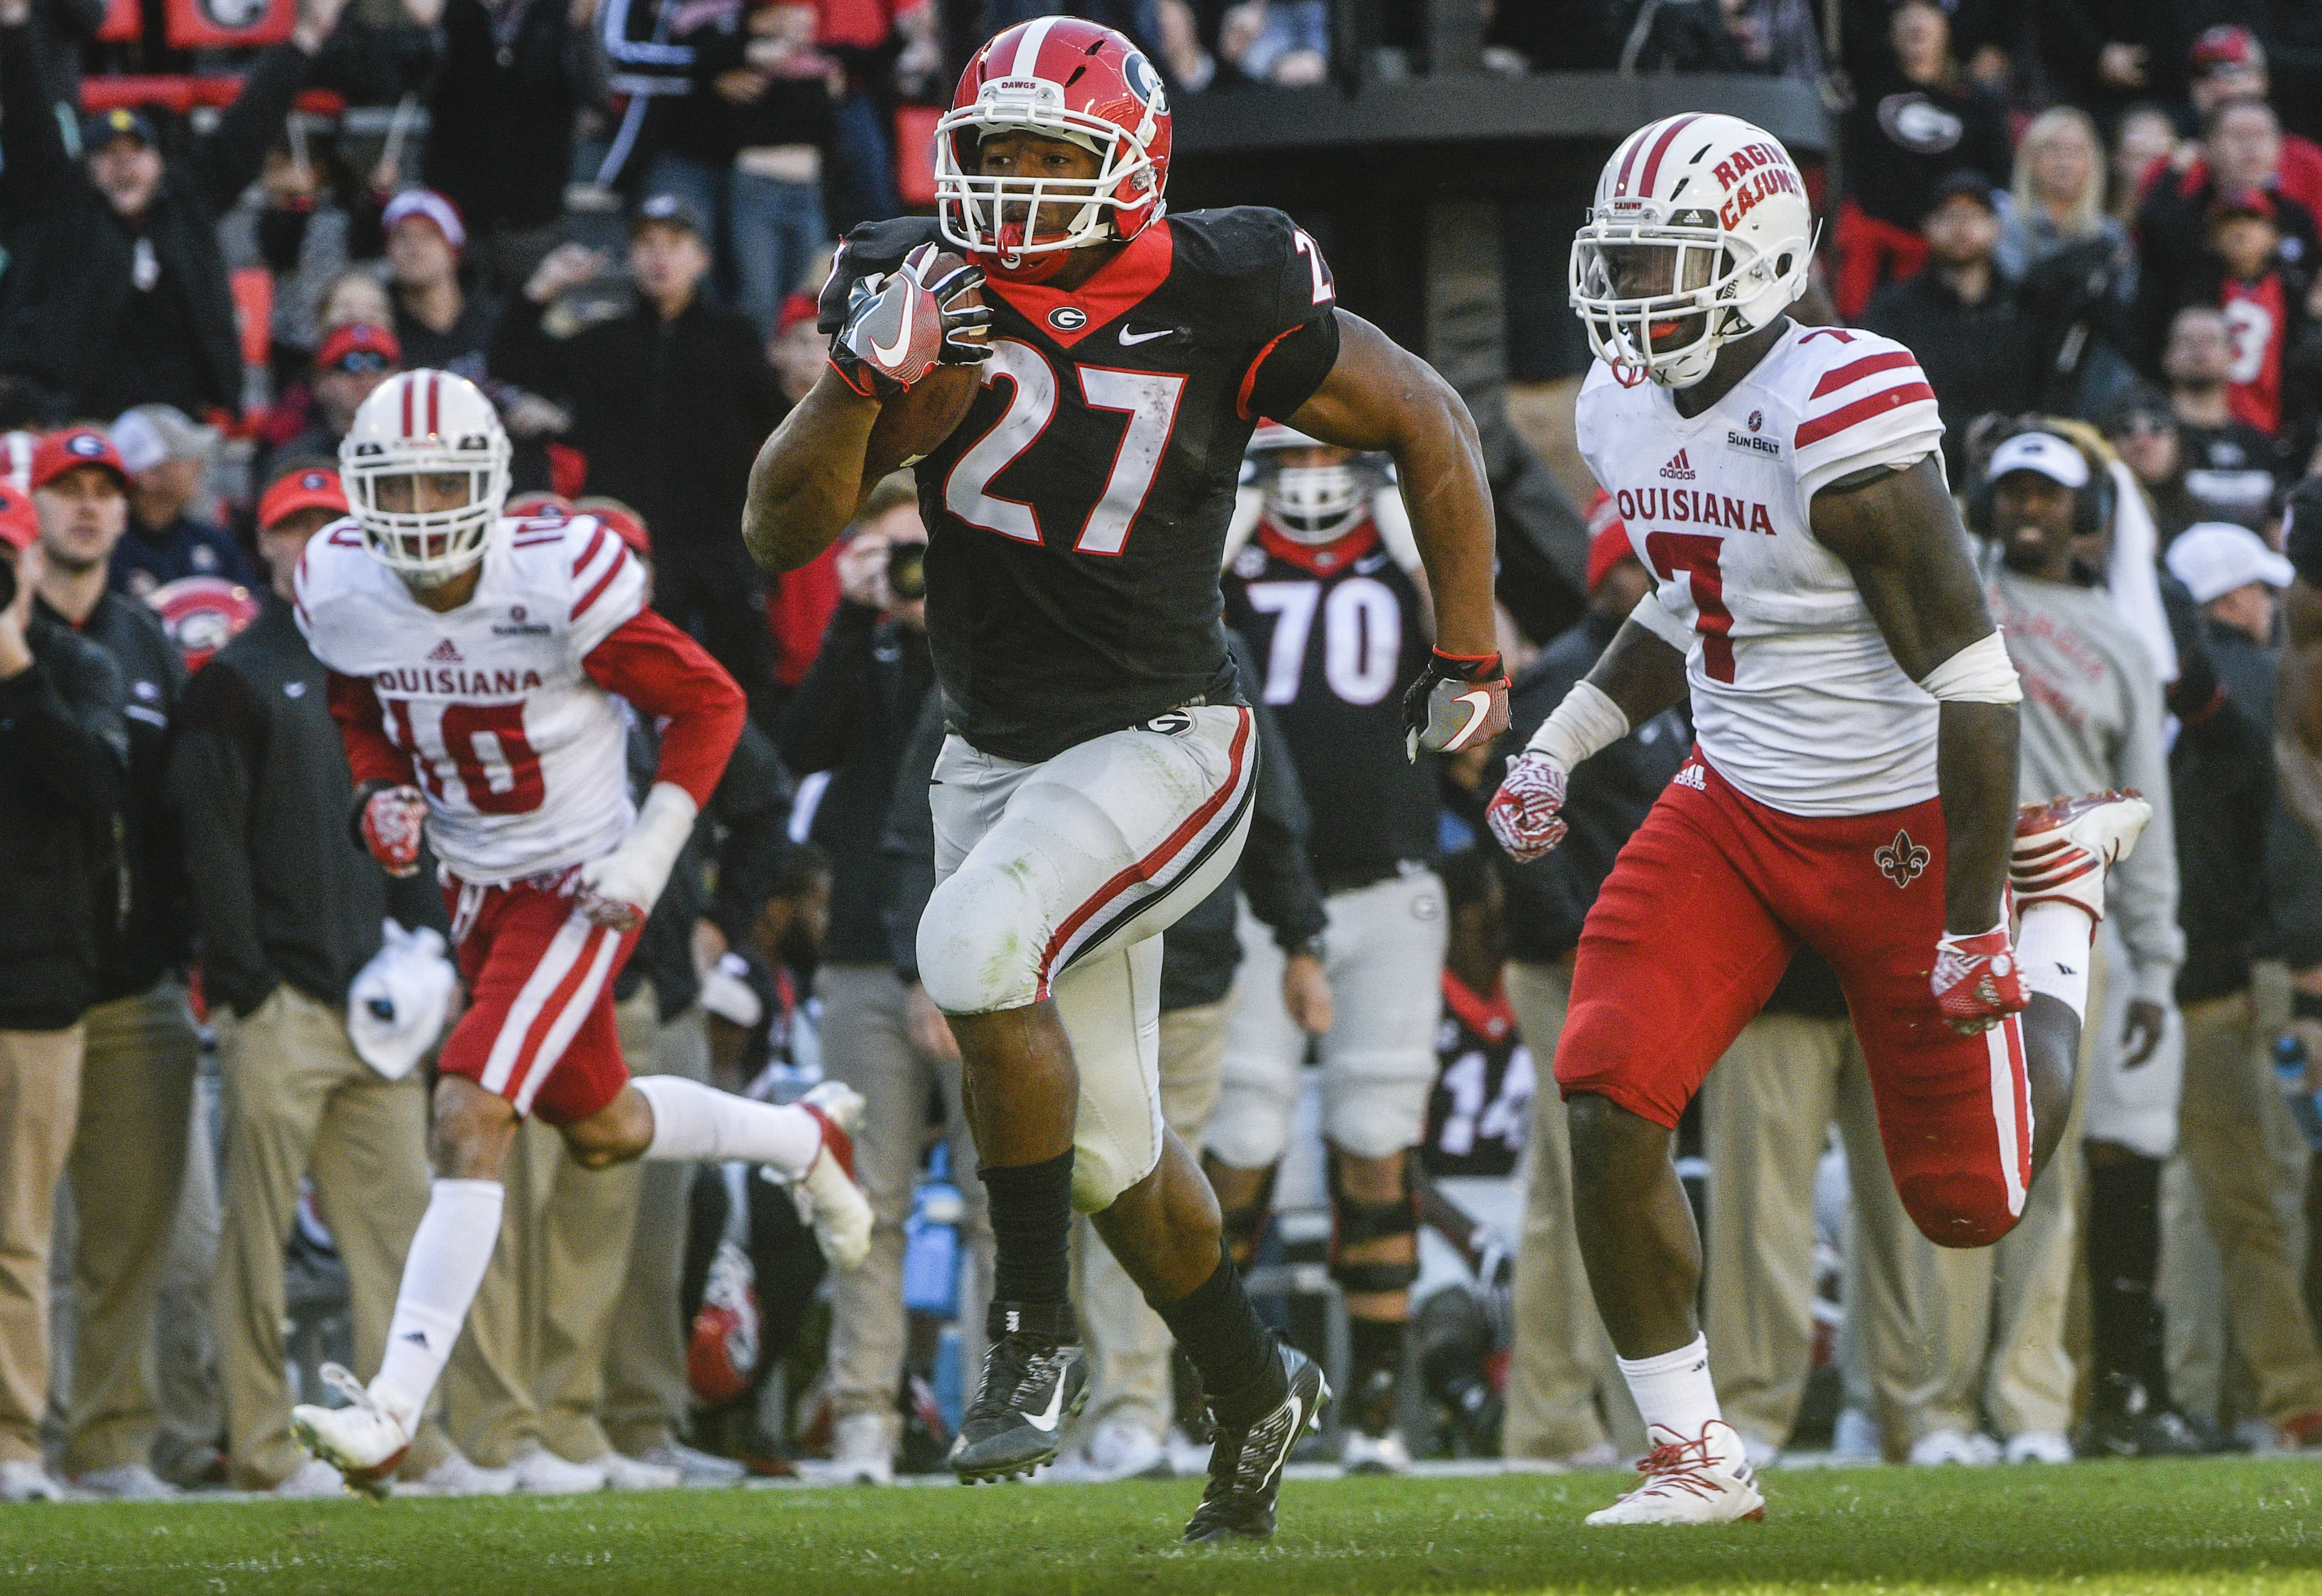 Georgia running back Nick Chubb (27) breaks ahead from the defense of Louisiana Lafayette linebacker Otha Peters (7) and defensive back Christian Goodlett (10) on a long touchdown run during the fourth quarter of an NCAA college football game, Saturday, N